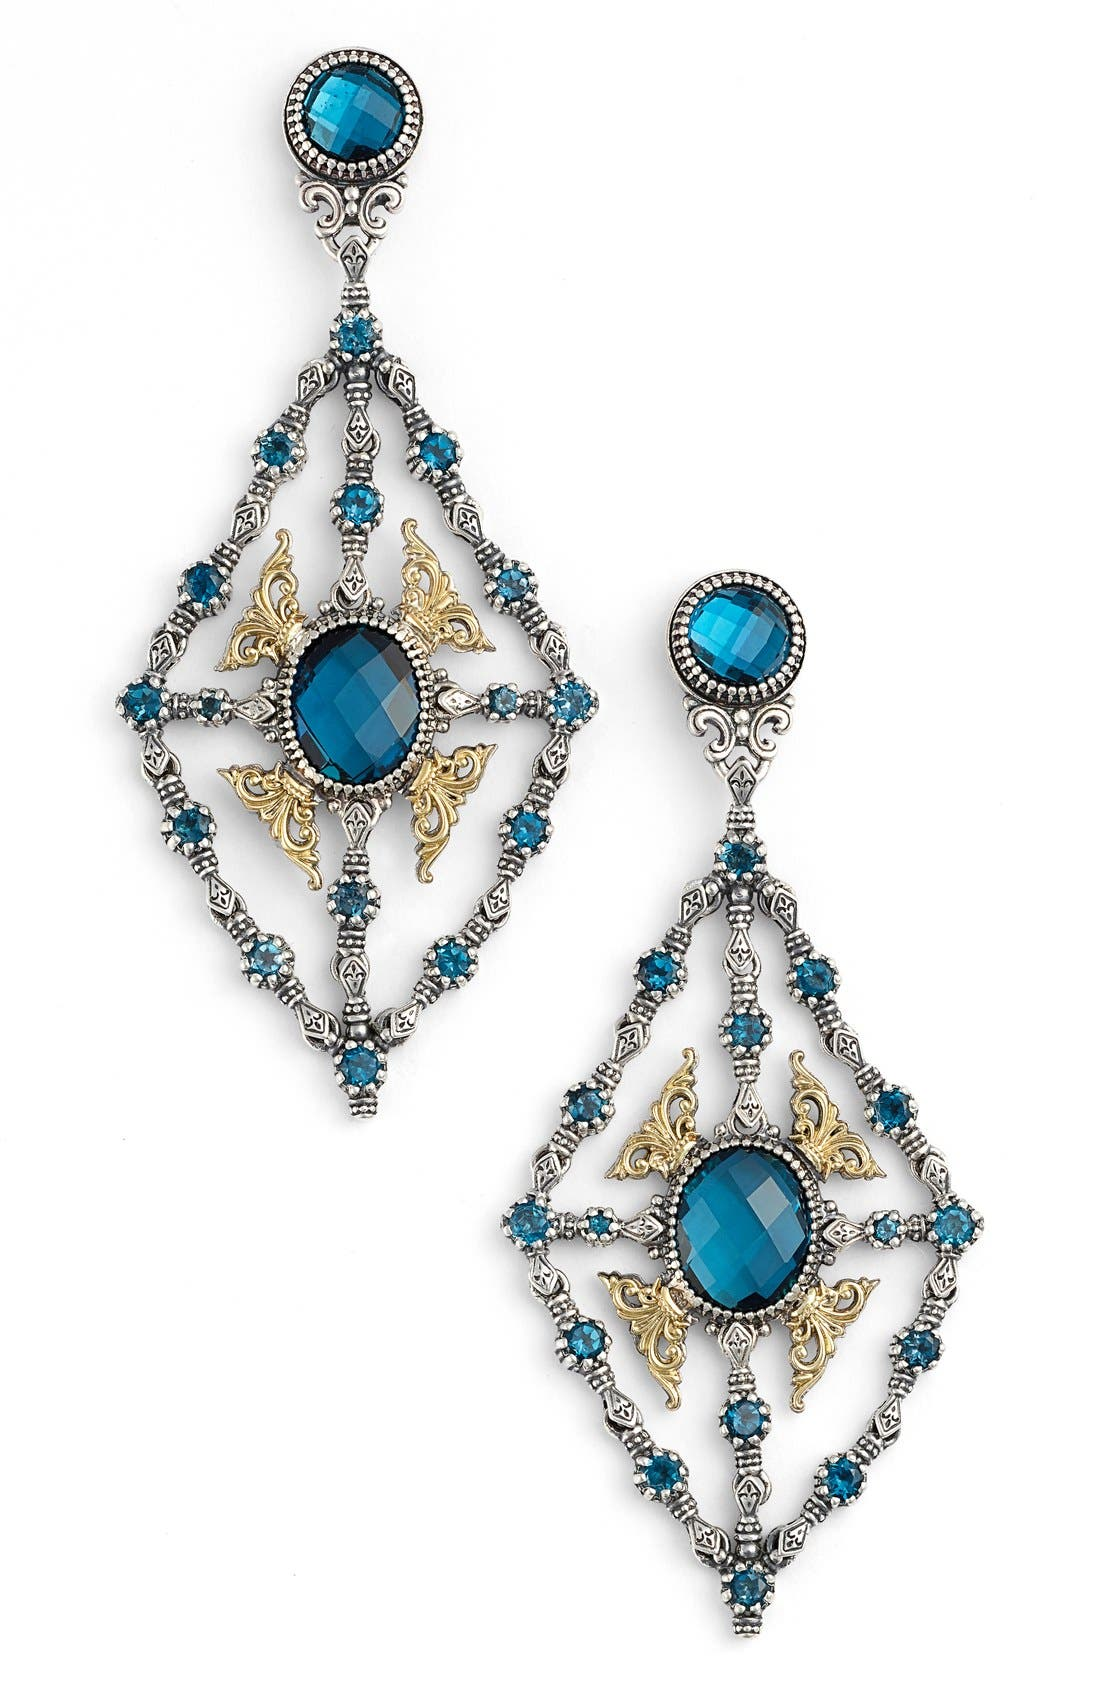 KONSTANTINO Thalassa Blue Topaz Kite Chandelier Earrings